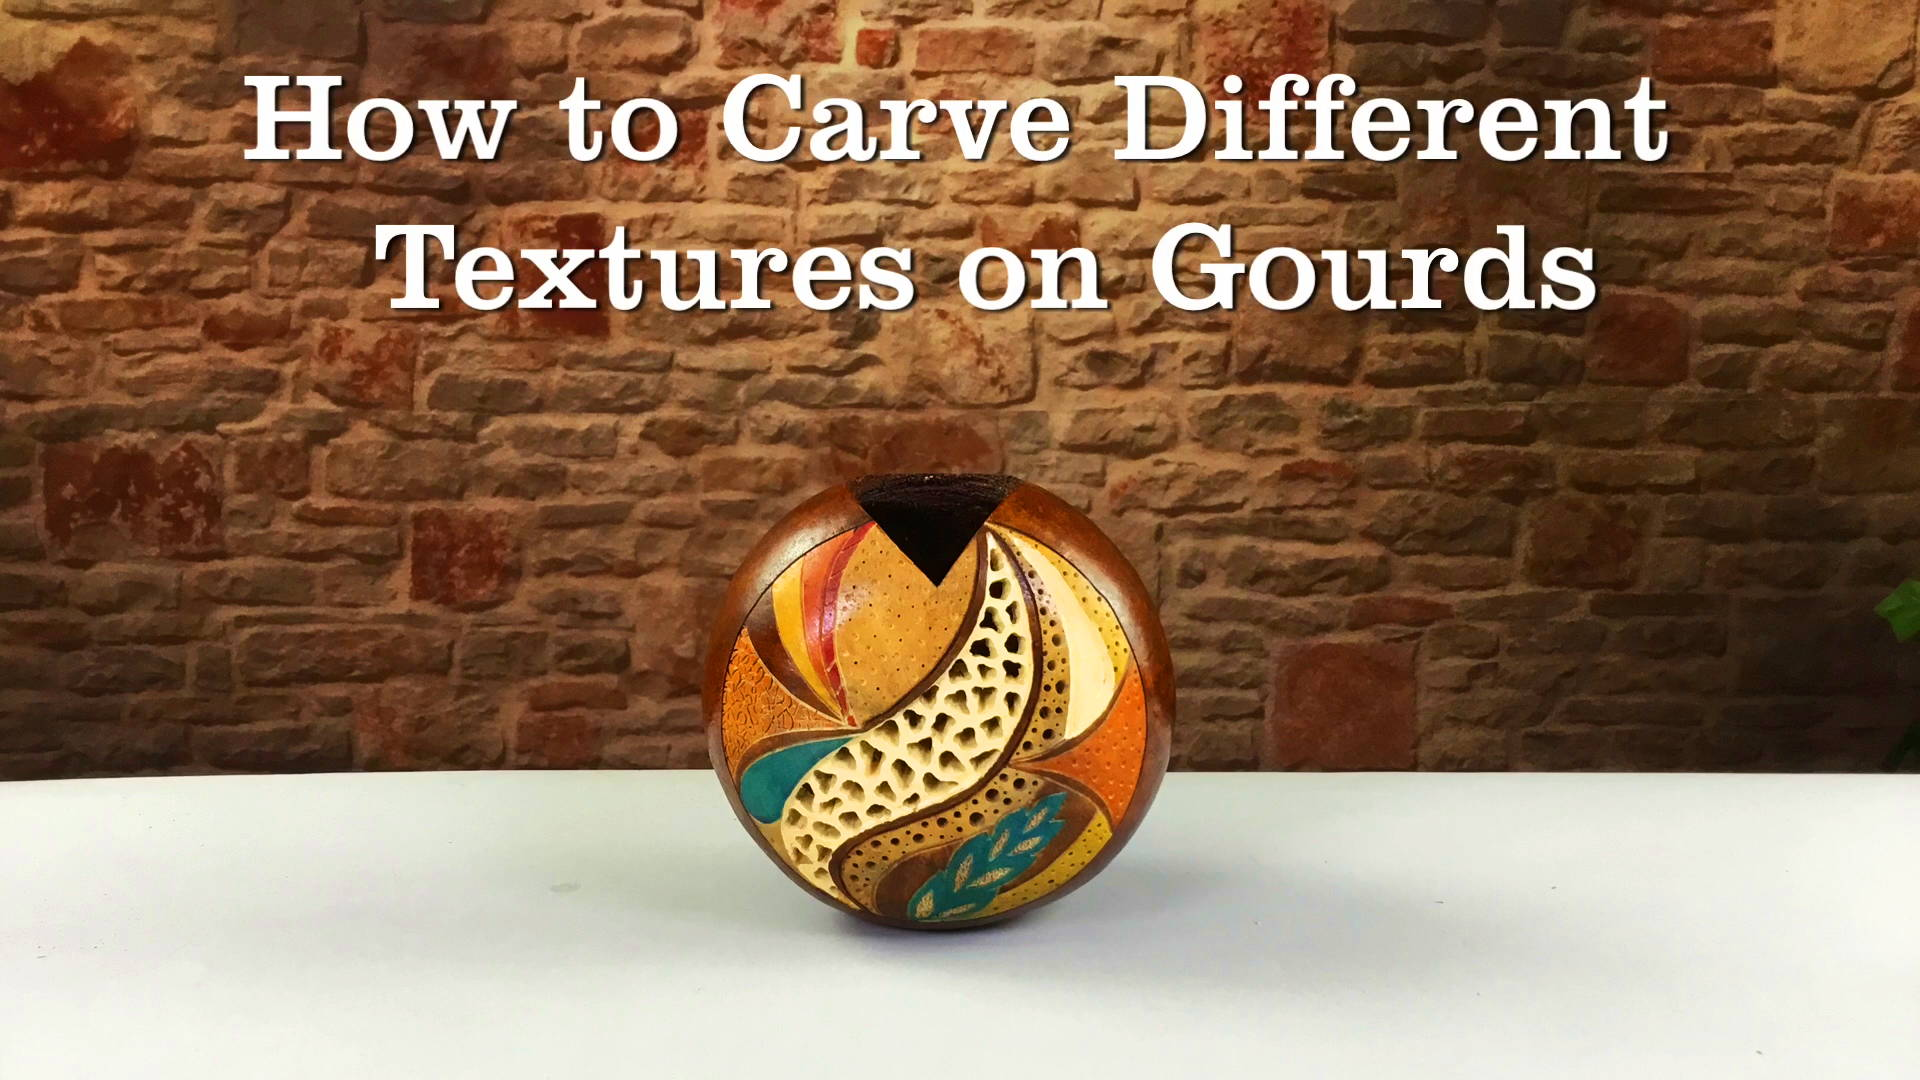 How to Carve Different Textures on Gourds